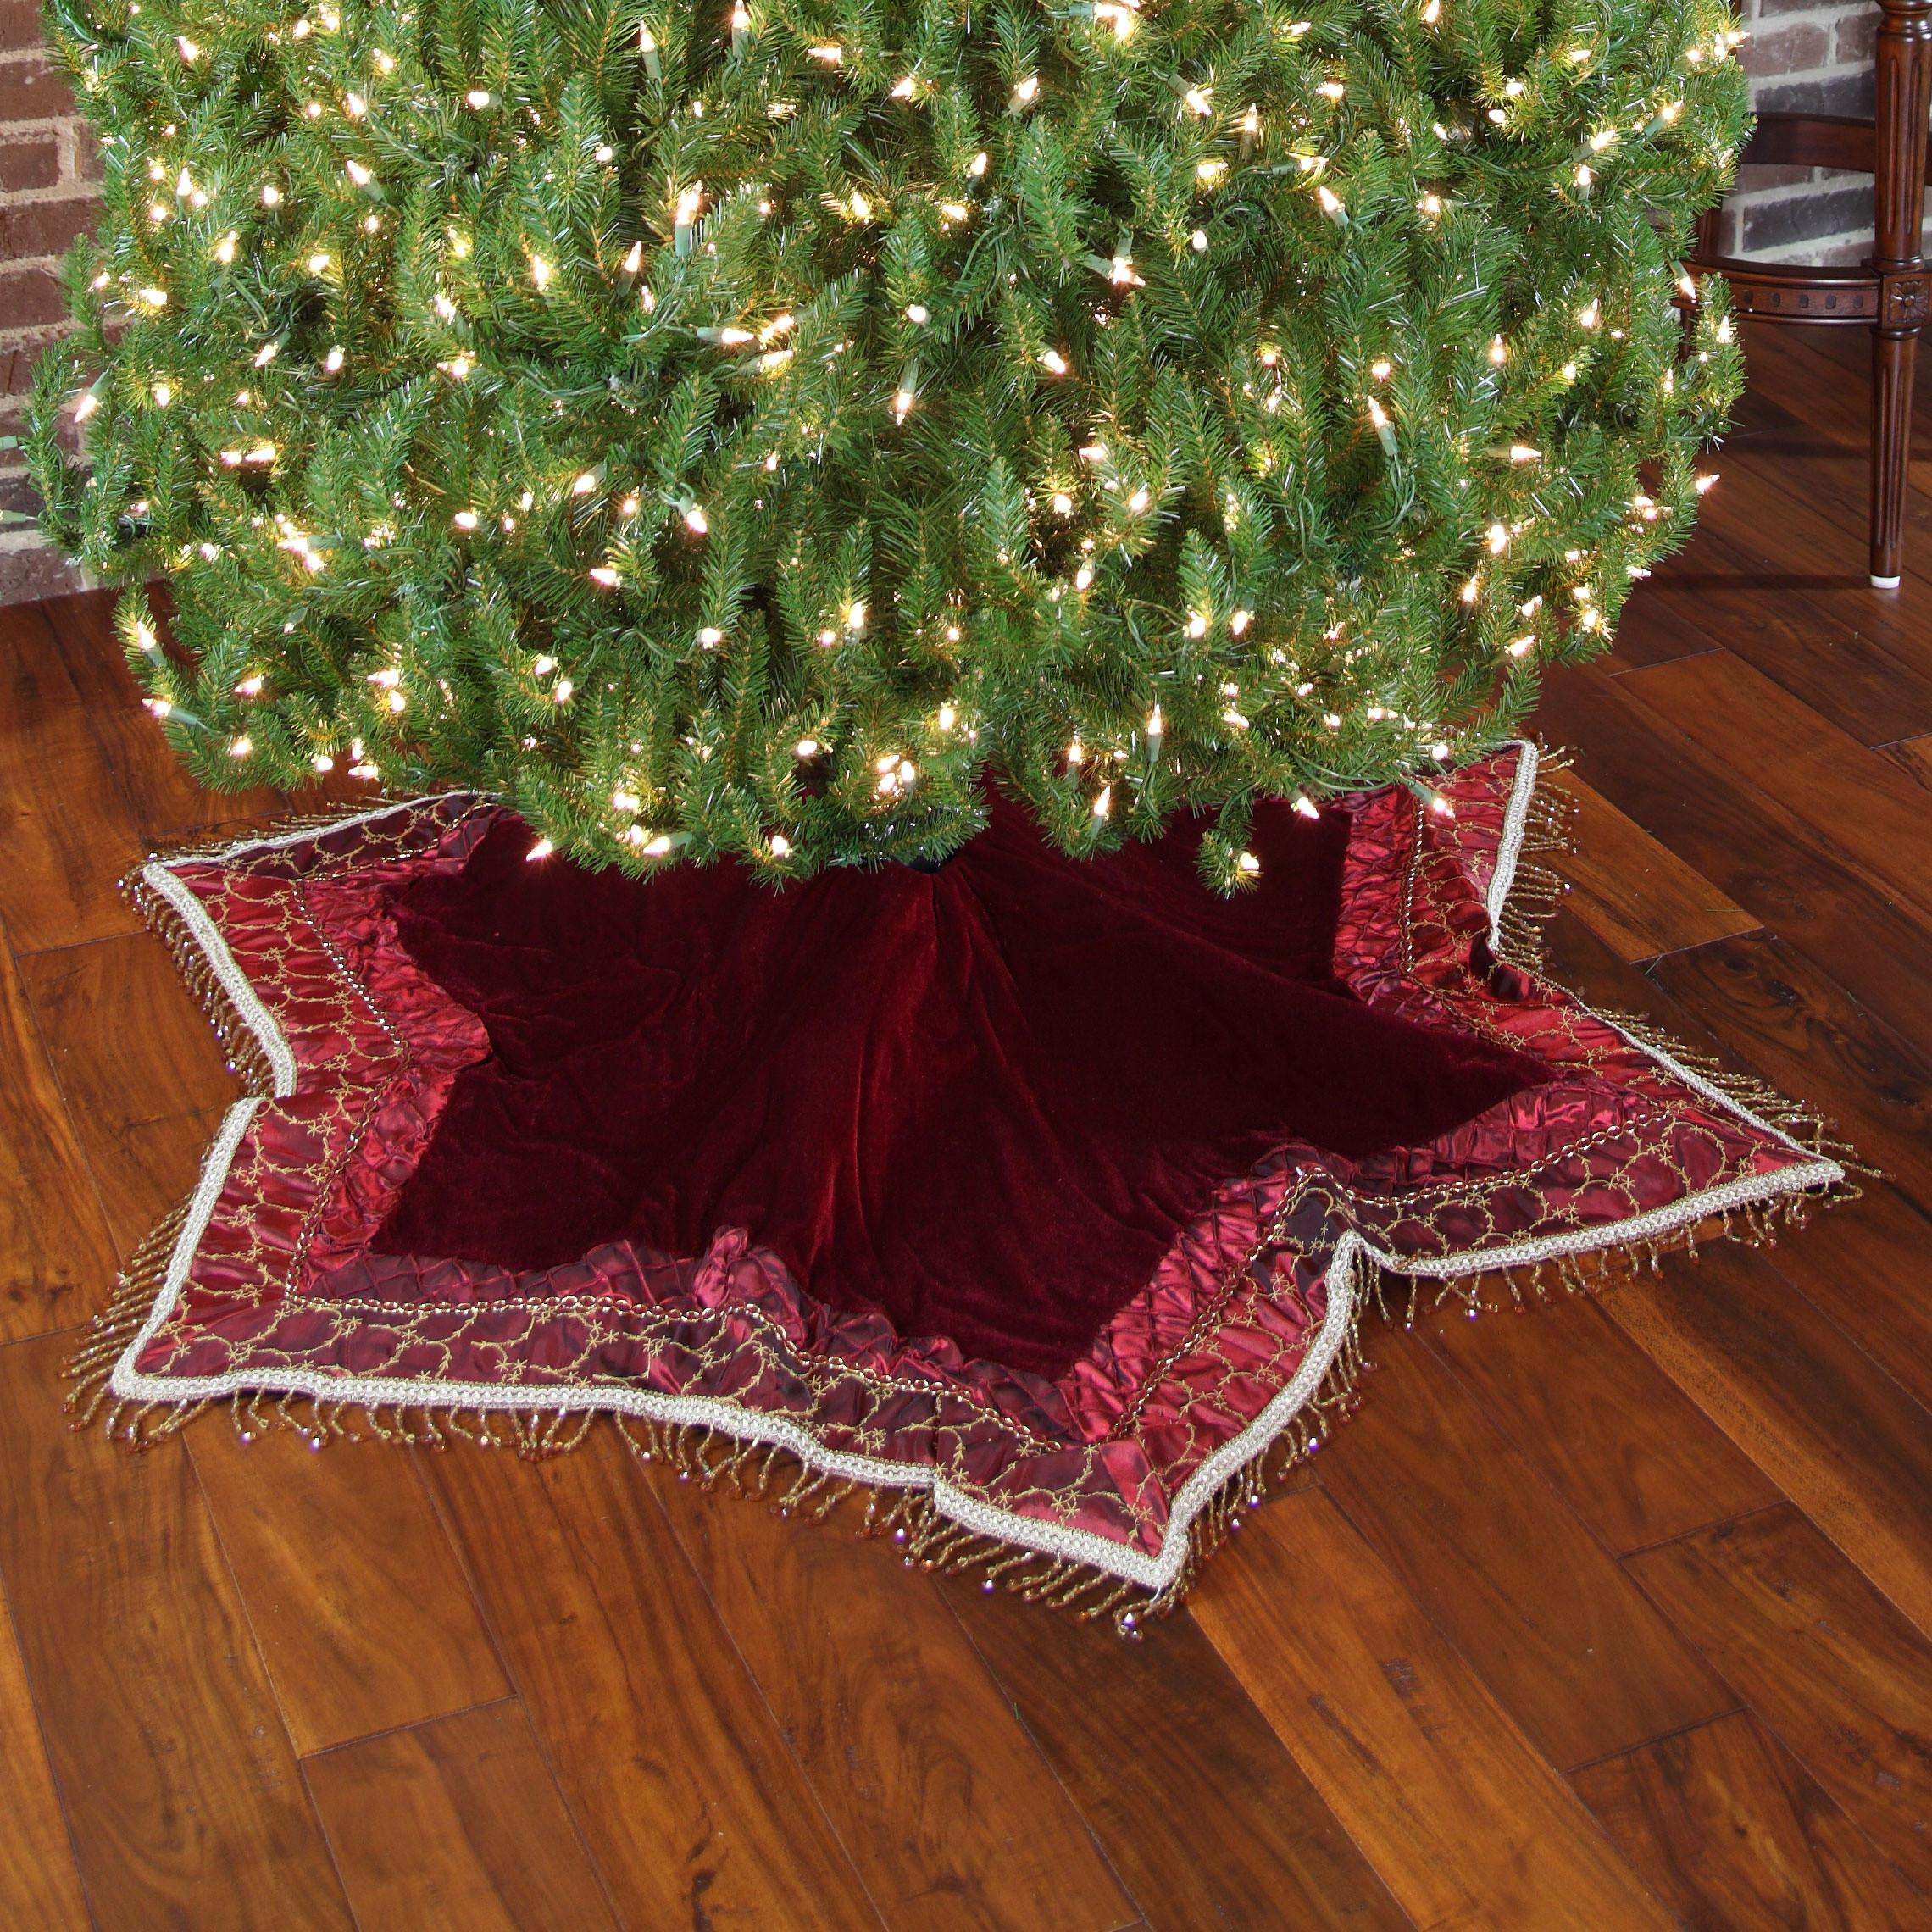 Tree Skirts Solid Burgundy Velvet Skirt